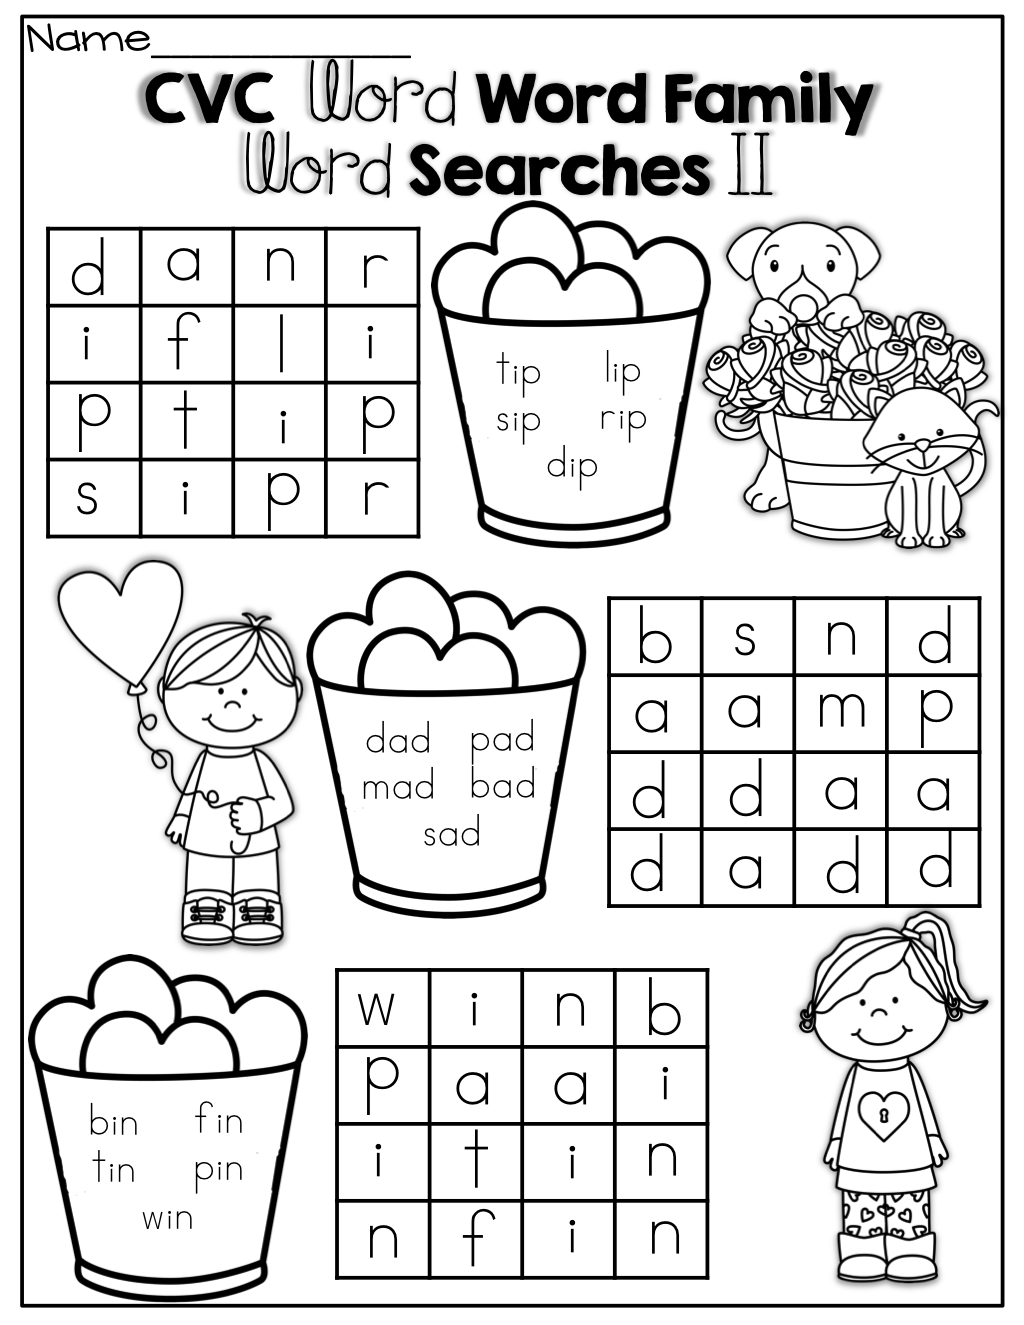 Easy Word Search | Worksheet | Education.com